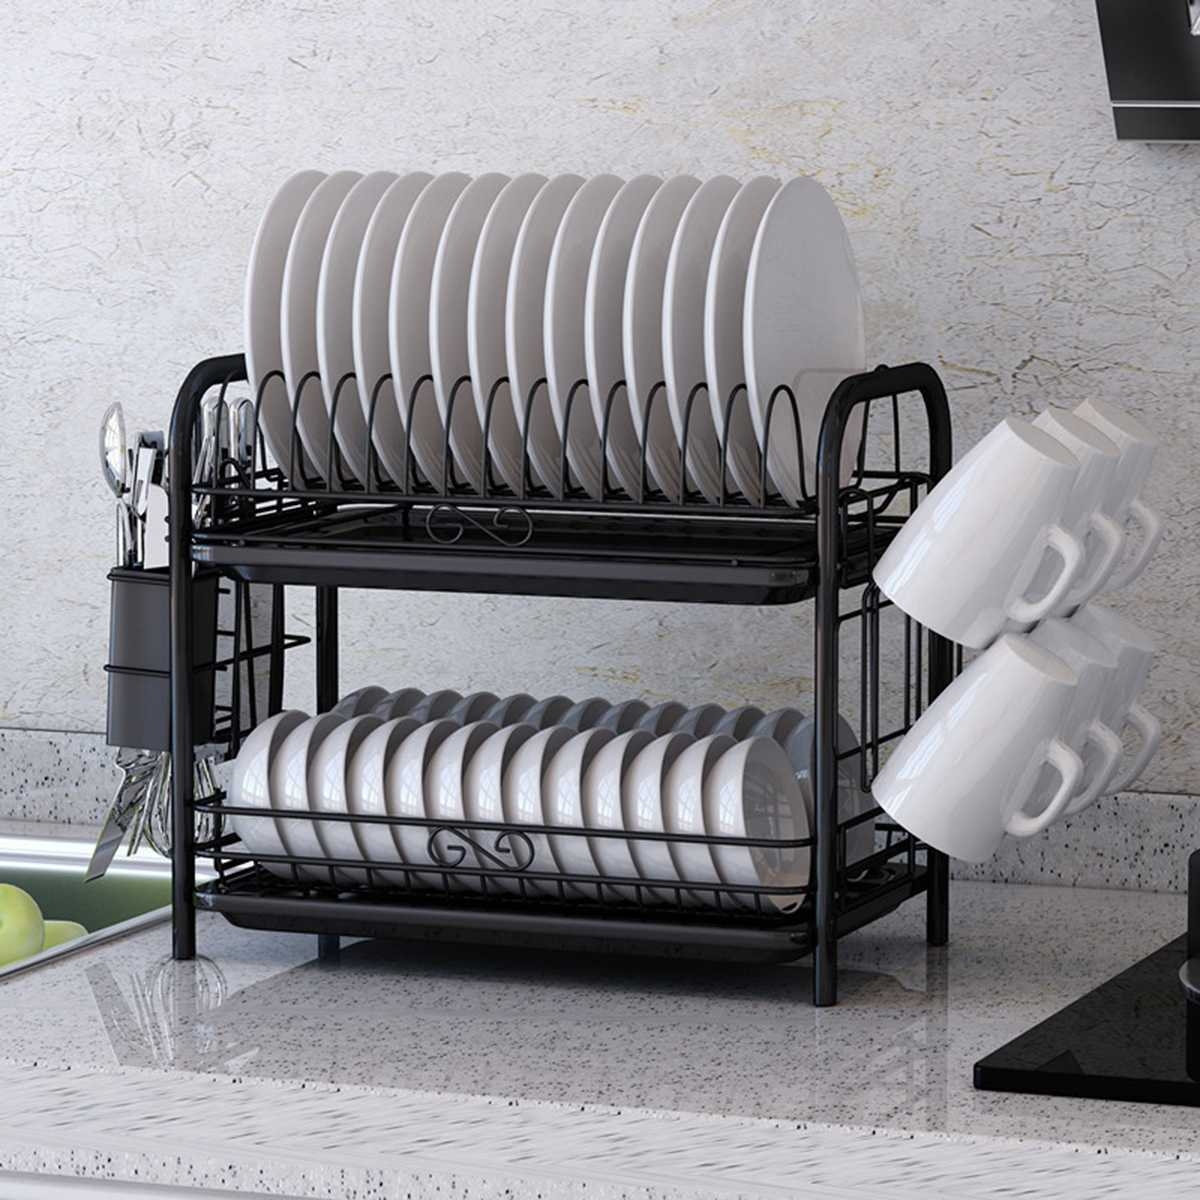 2/3 Tiers Dish Drying Rack Holder Basket Plated Iron Home Washing Great Kitchen Sink Dish Drainer Drying Rack Organizer Black 1